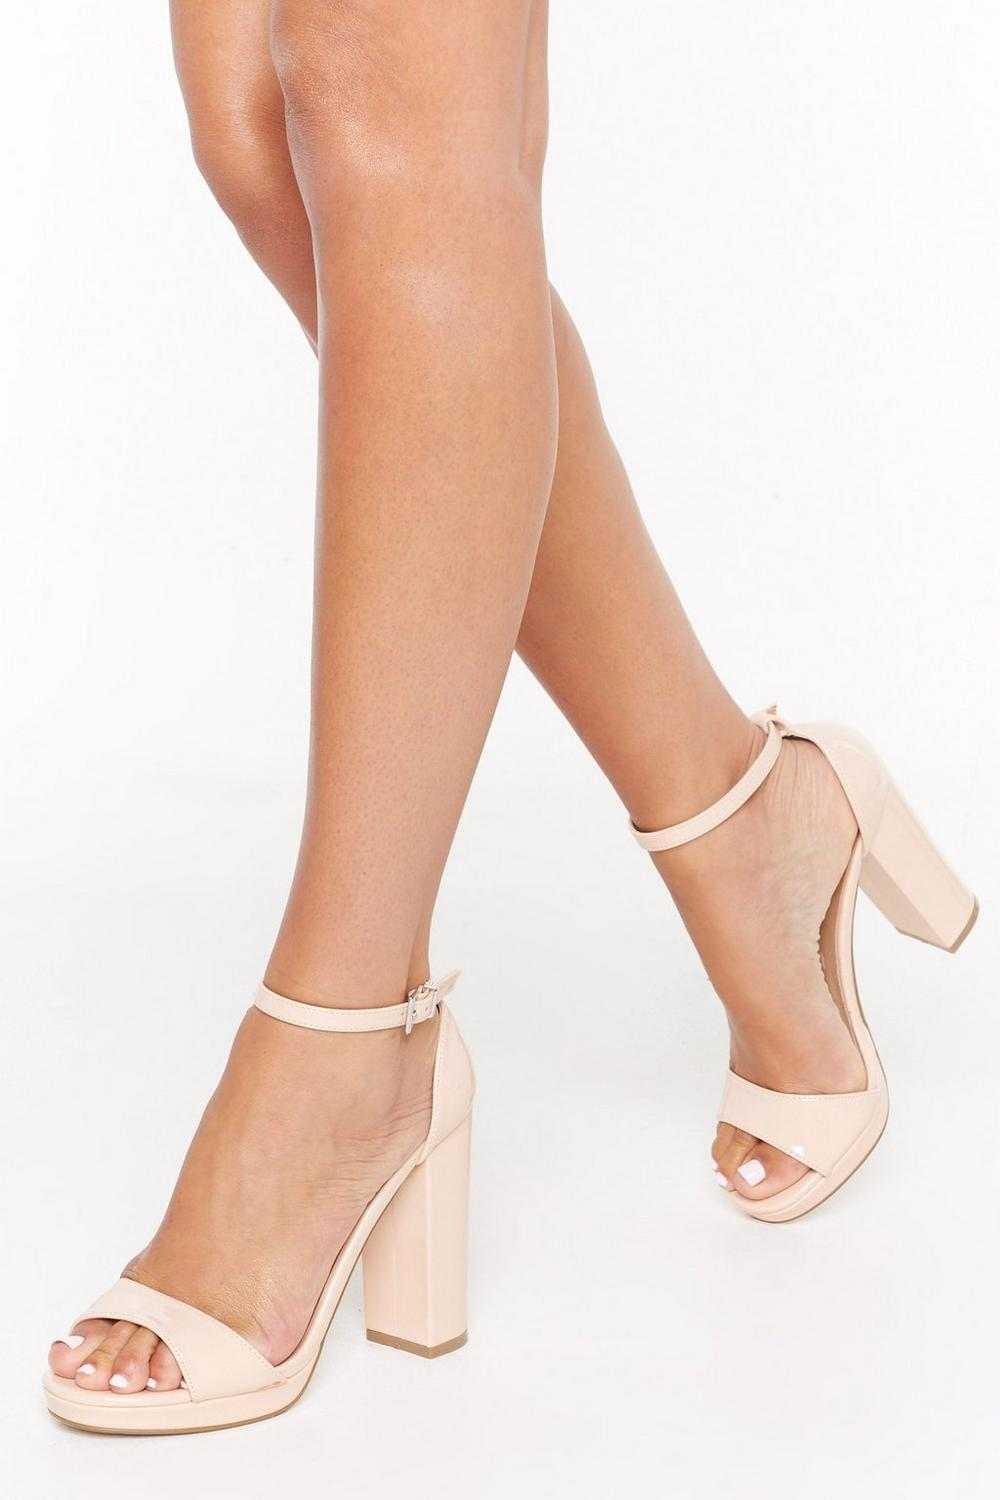 High On You Patent Faux Leather Platform Heels by Nasty Gal